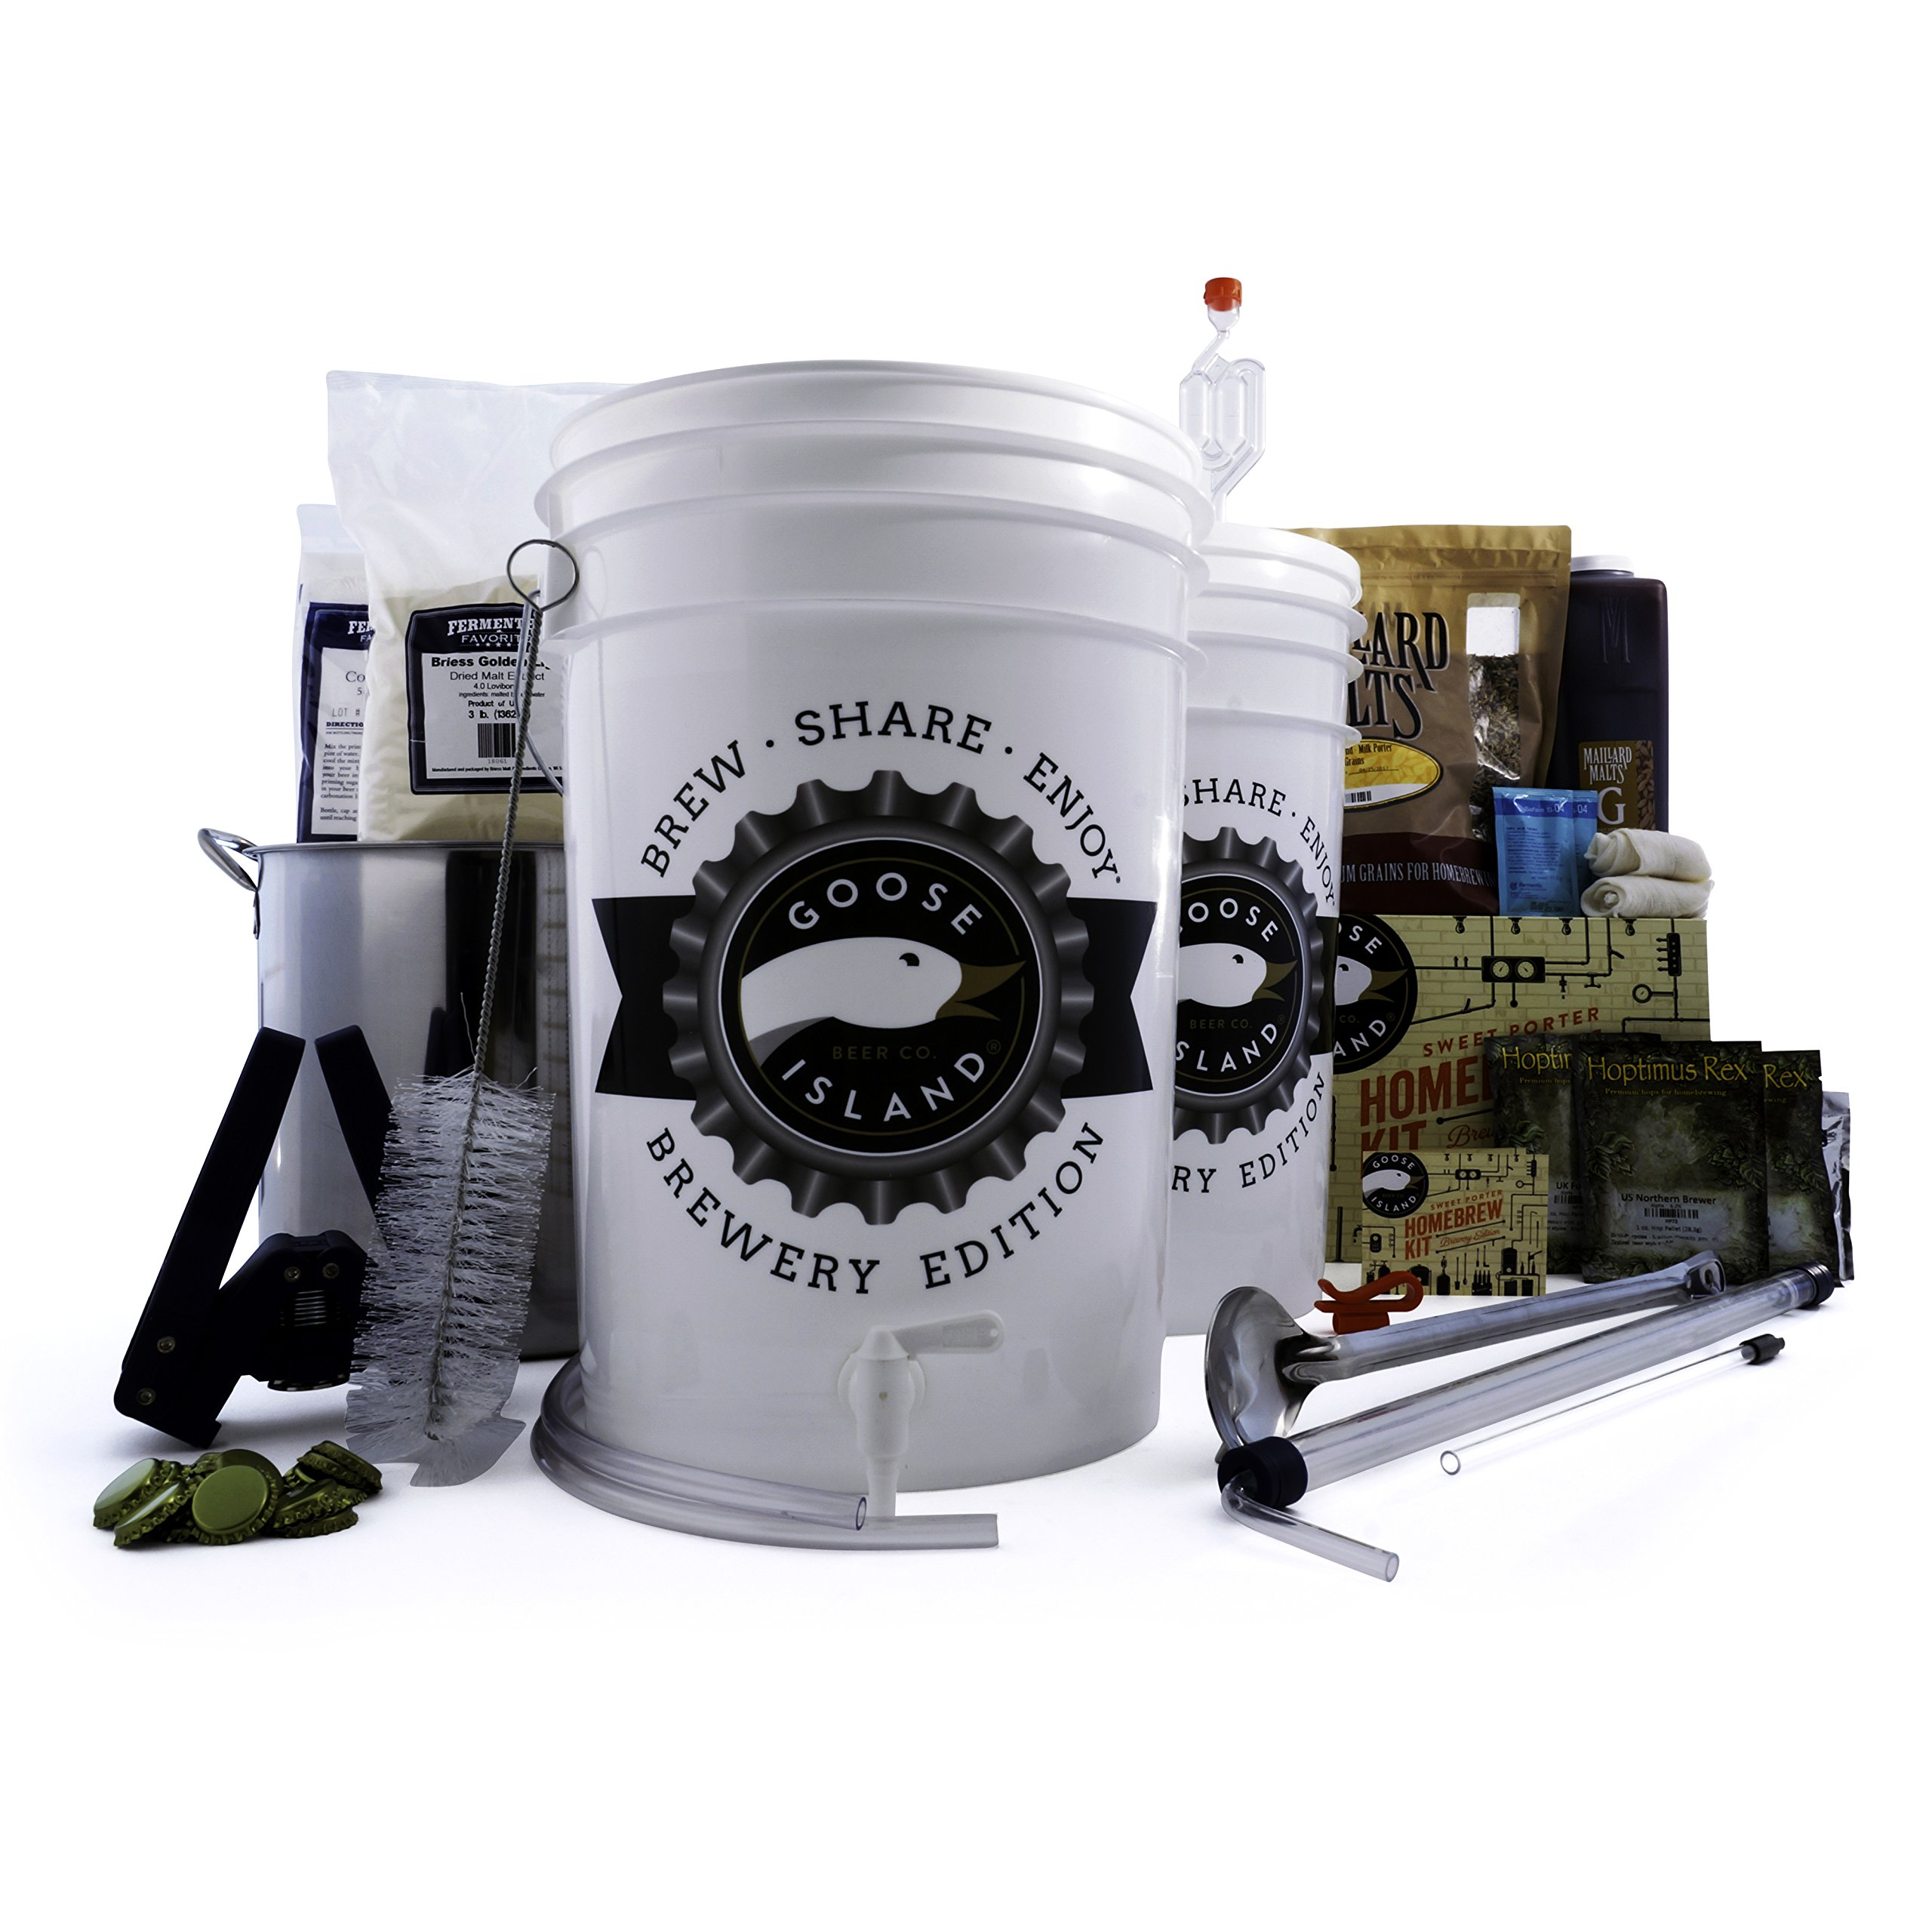 Goose Island Beer Brewing Equipment Starter Kit - 5 Gallon - Brew Share Enjoy Brewery Edition Goose Island Sweet Porter Recipe - Includes Brew Kettle by Northern Brewer